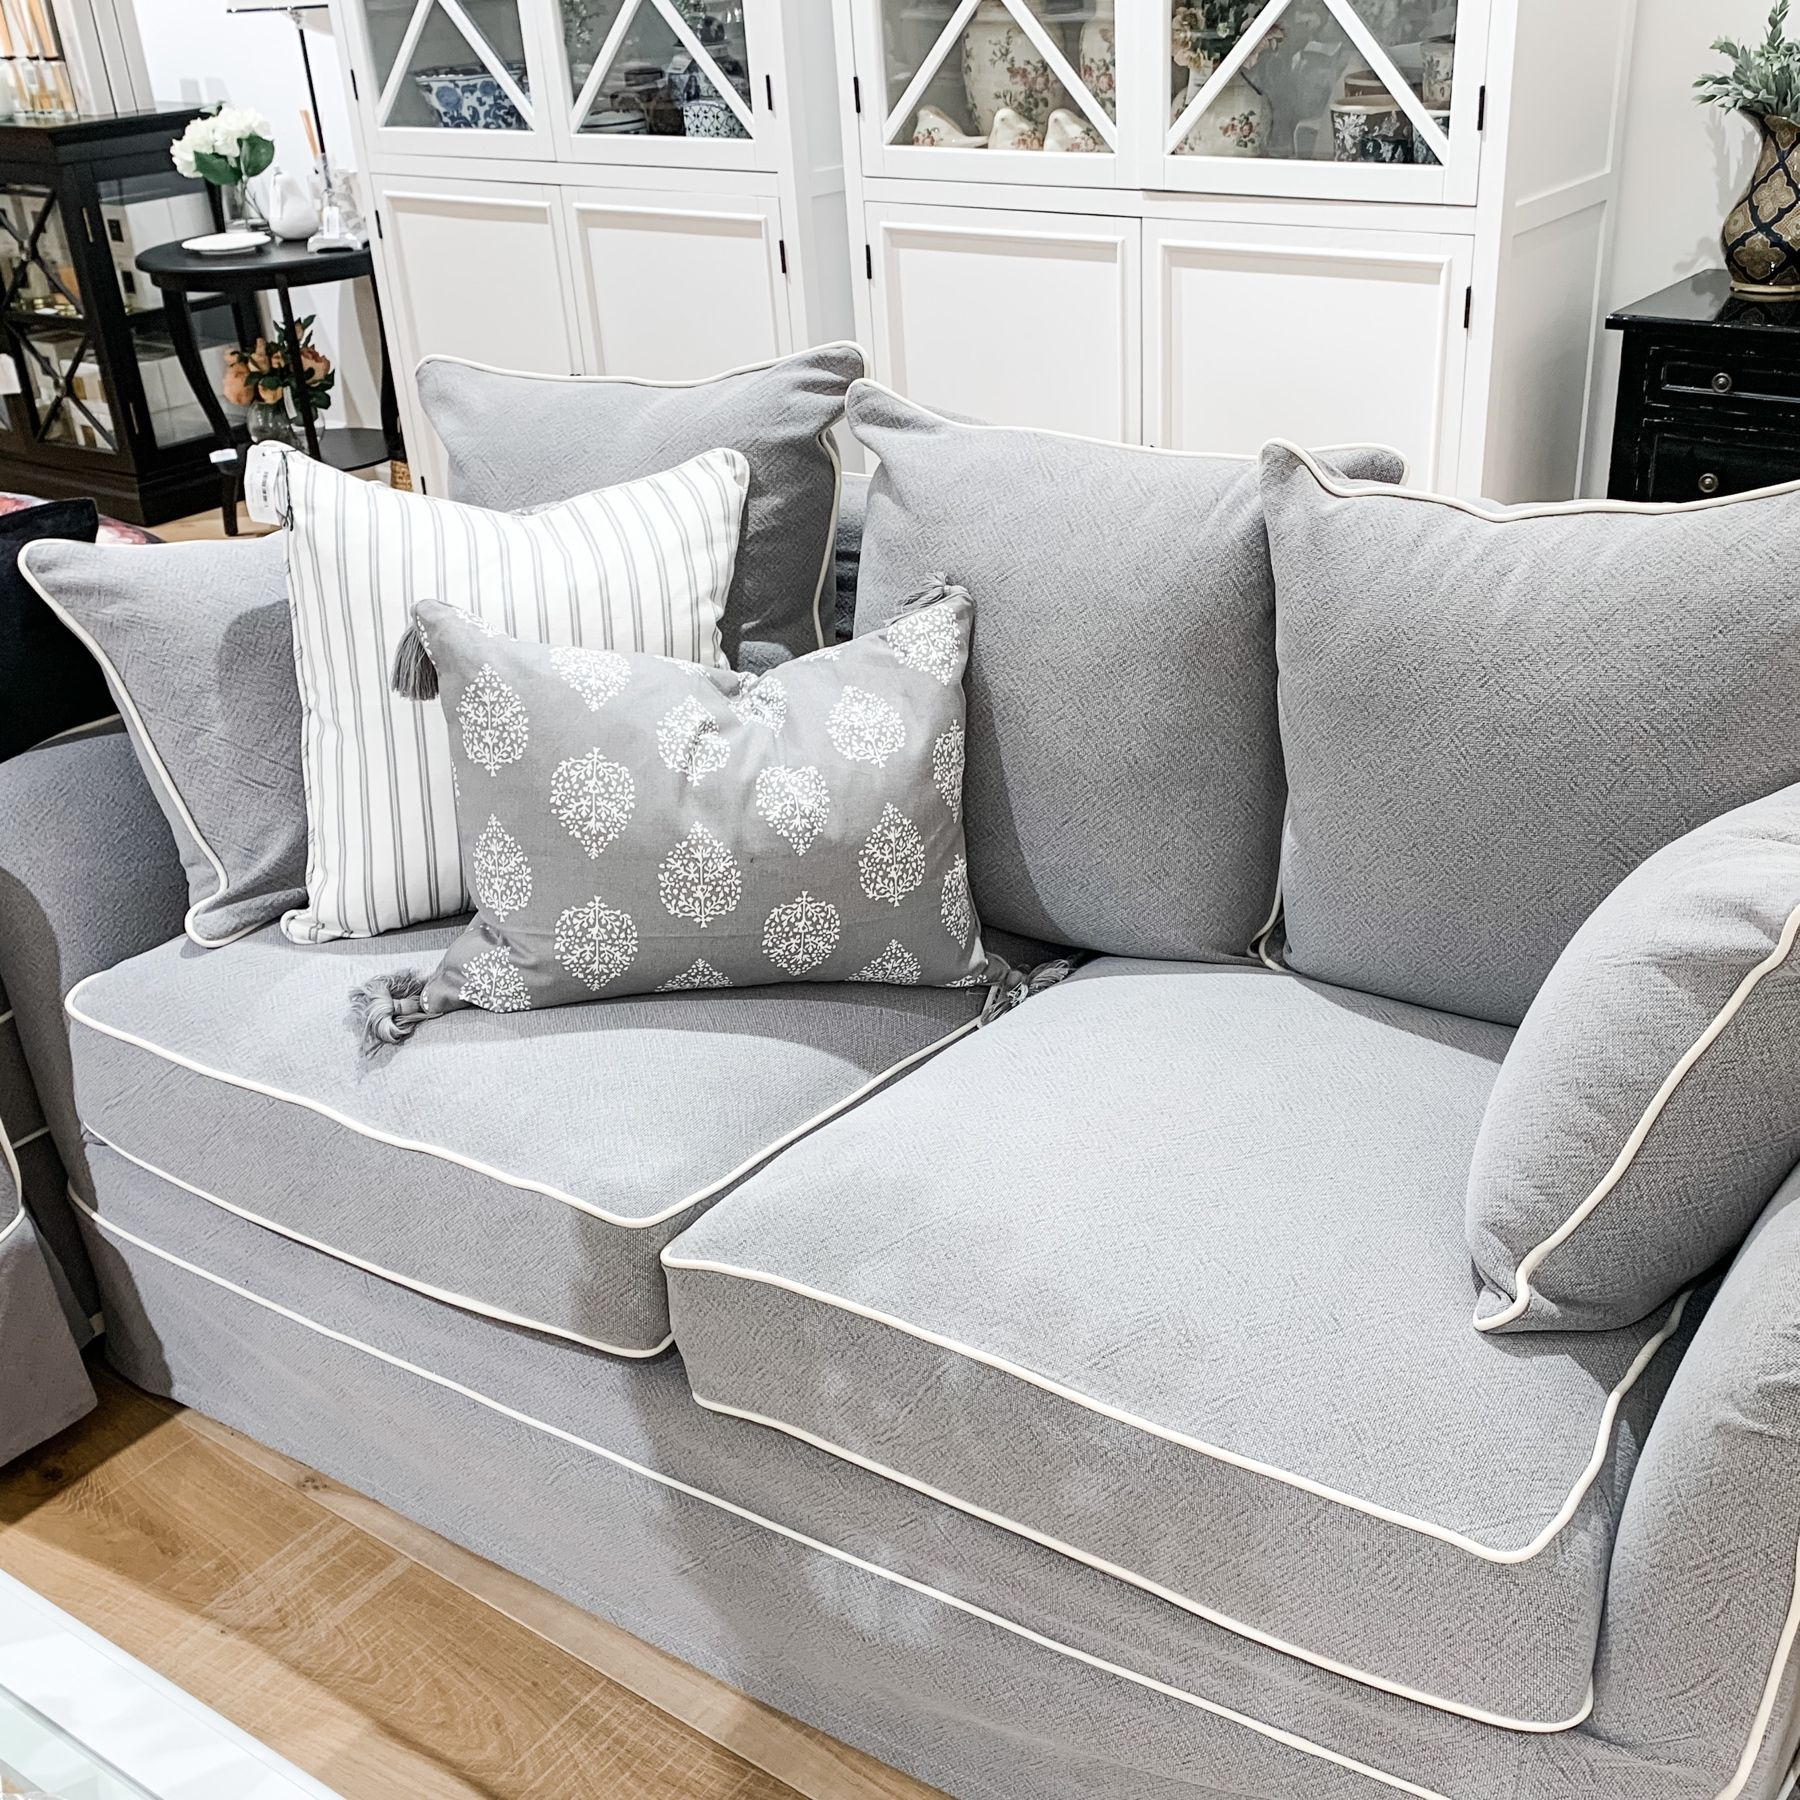 Our Cape Cod 2 Seater Sofa Combines